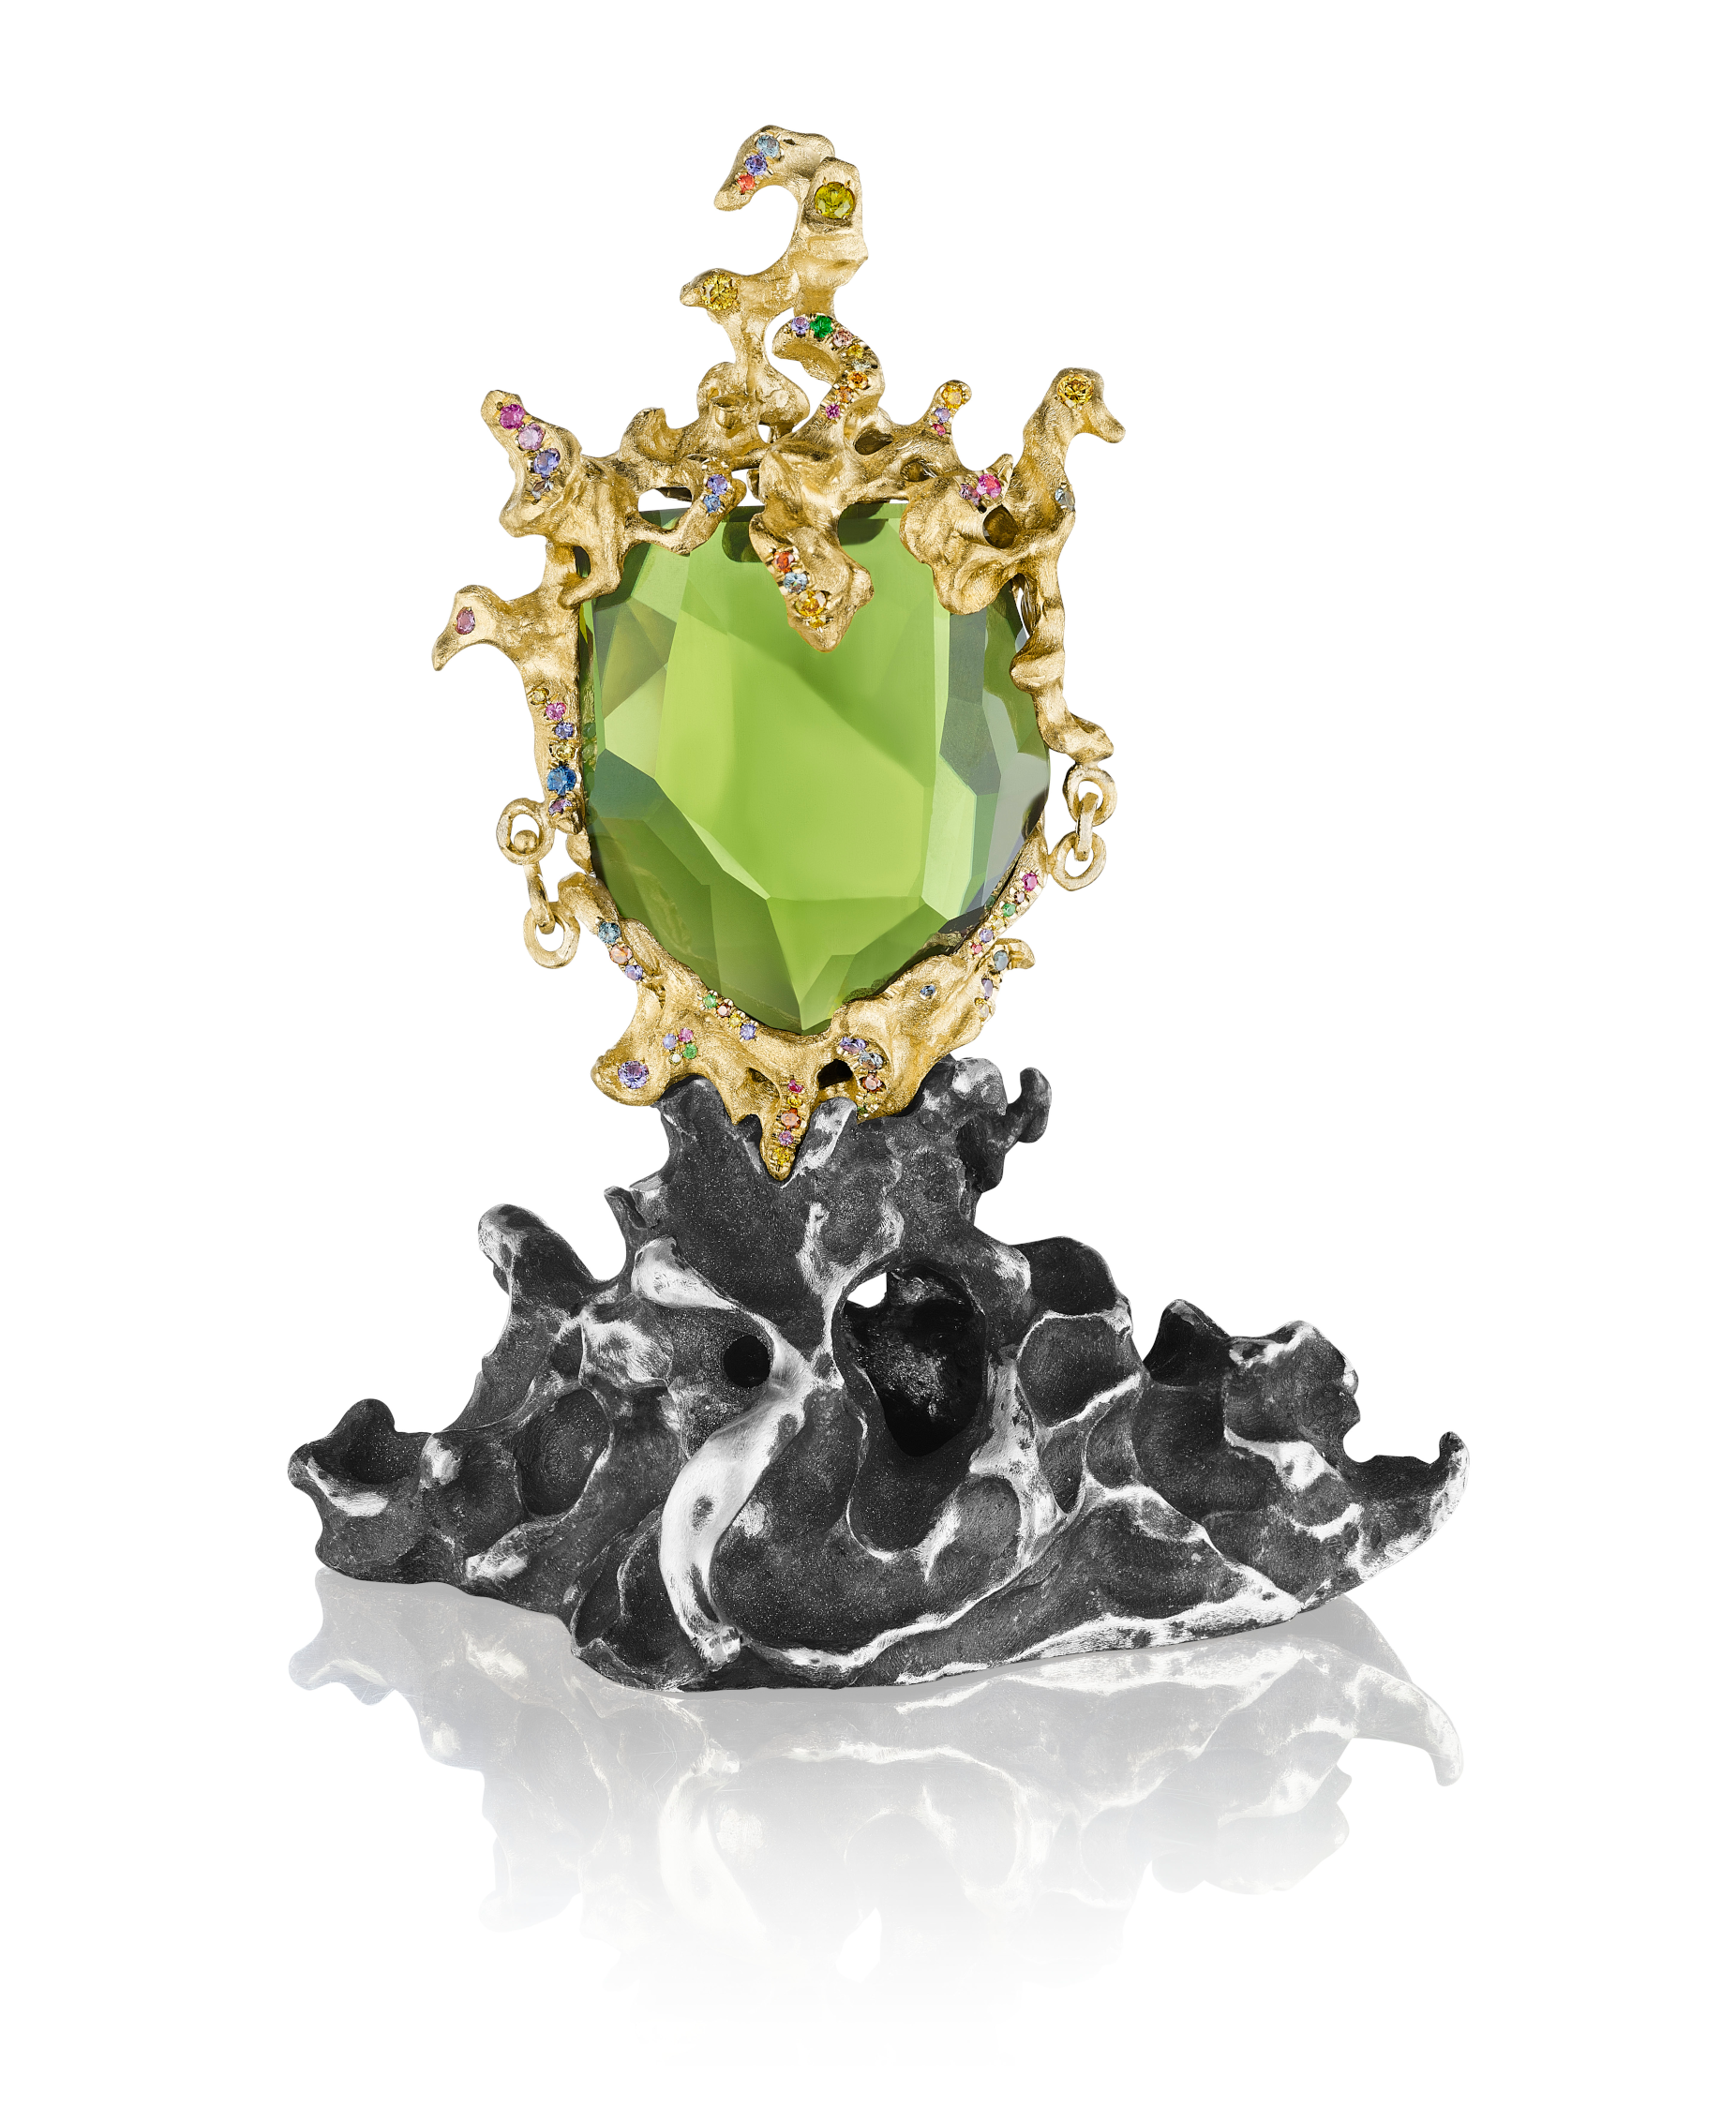 Green Genie Peridot Pendant and Sculpture